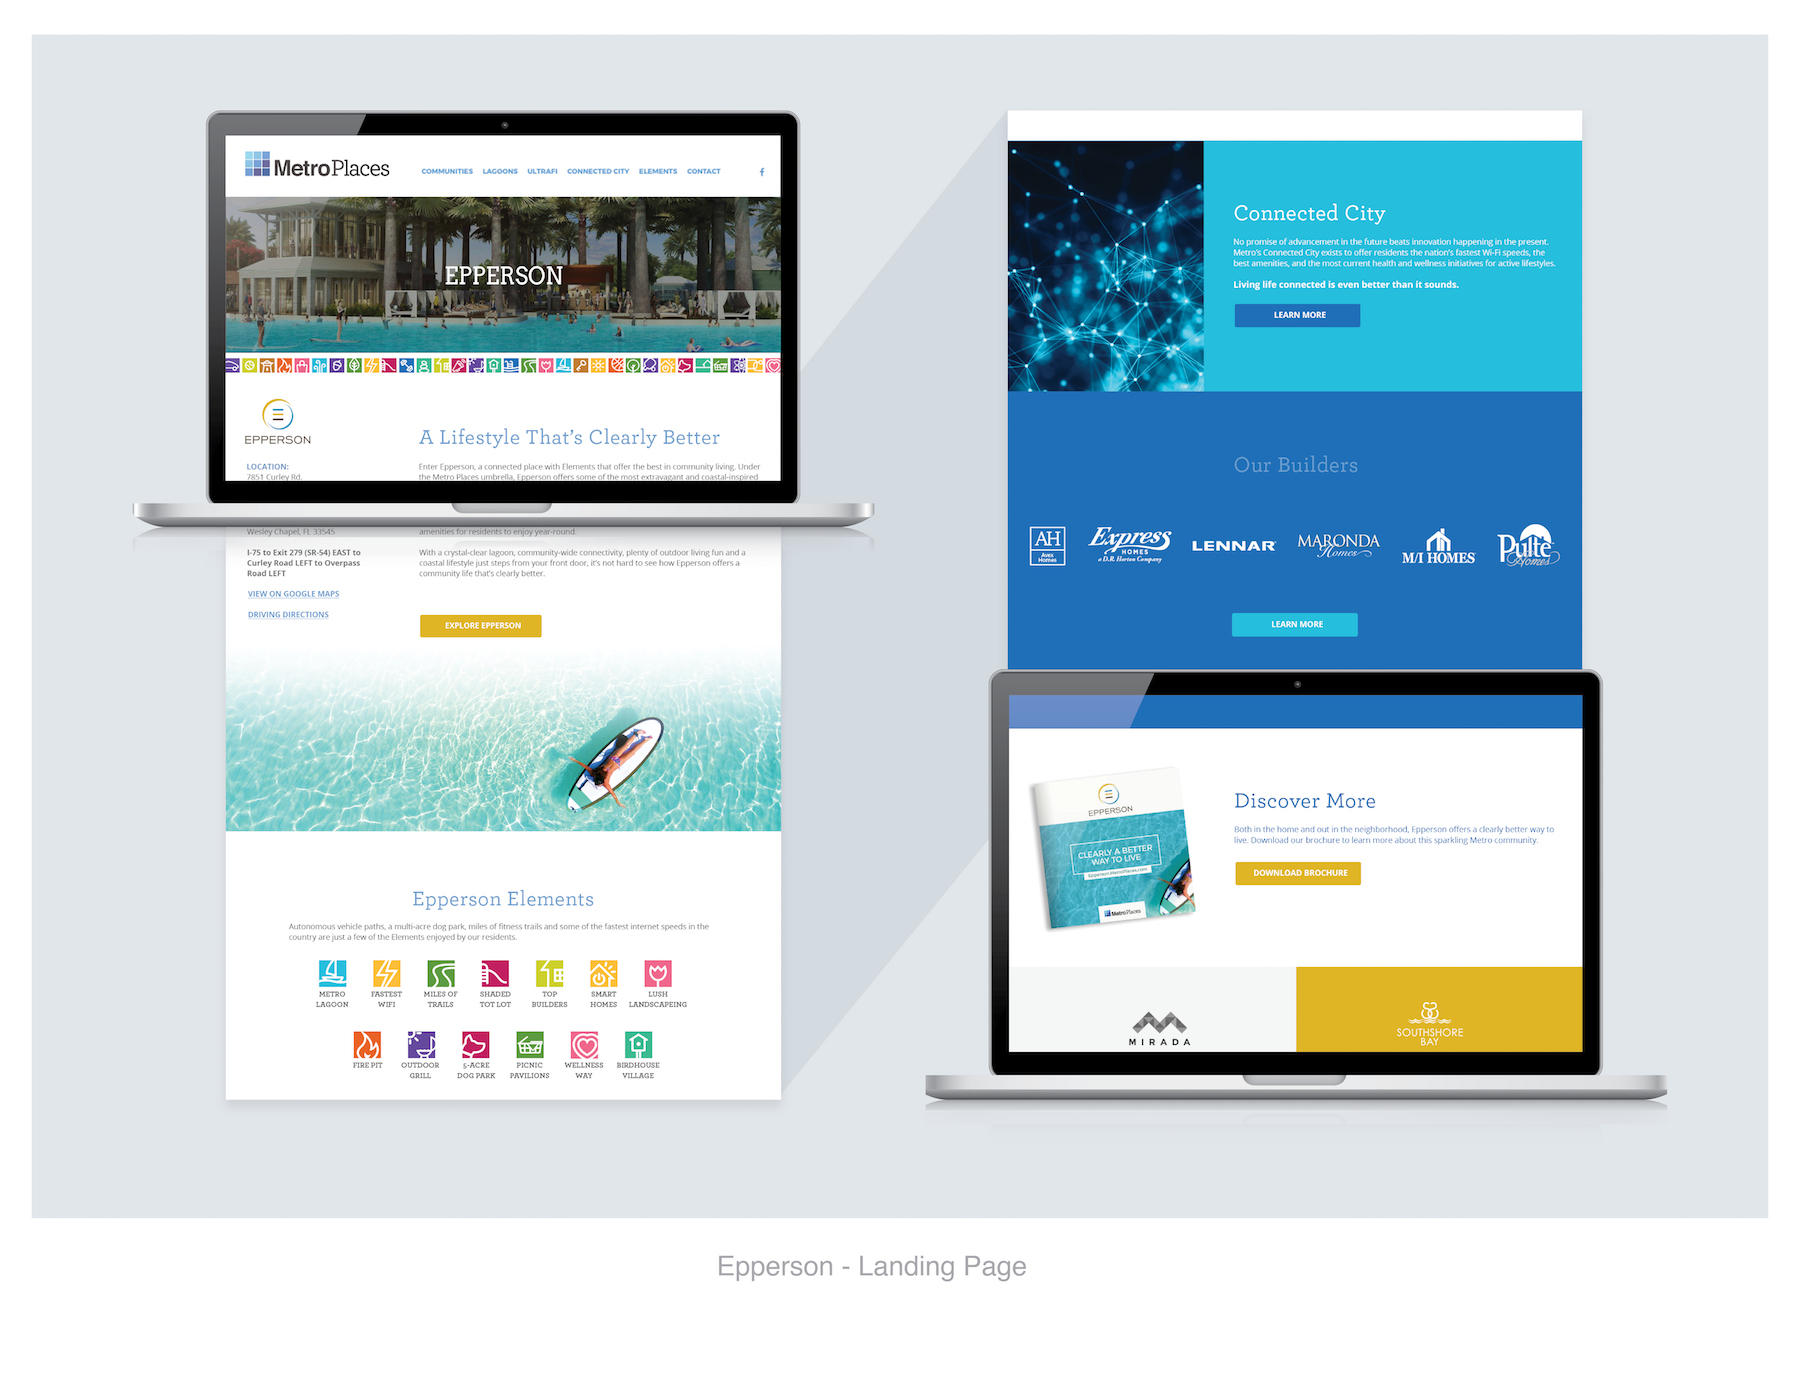 Epperson website and landing pages mock ups